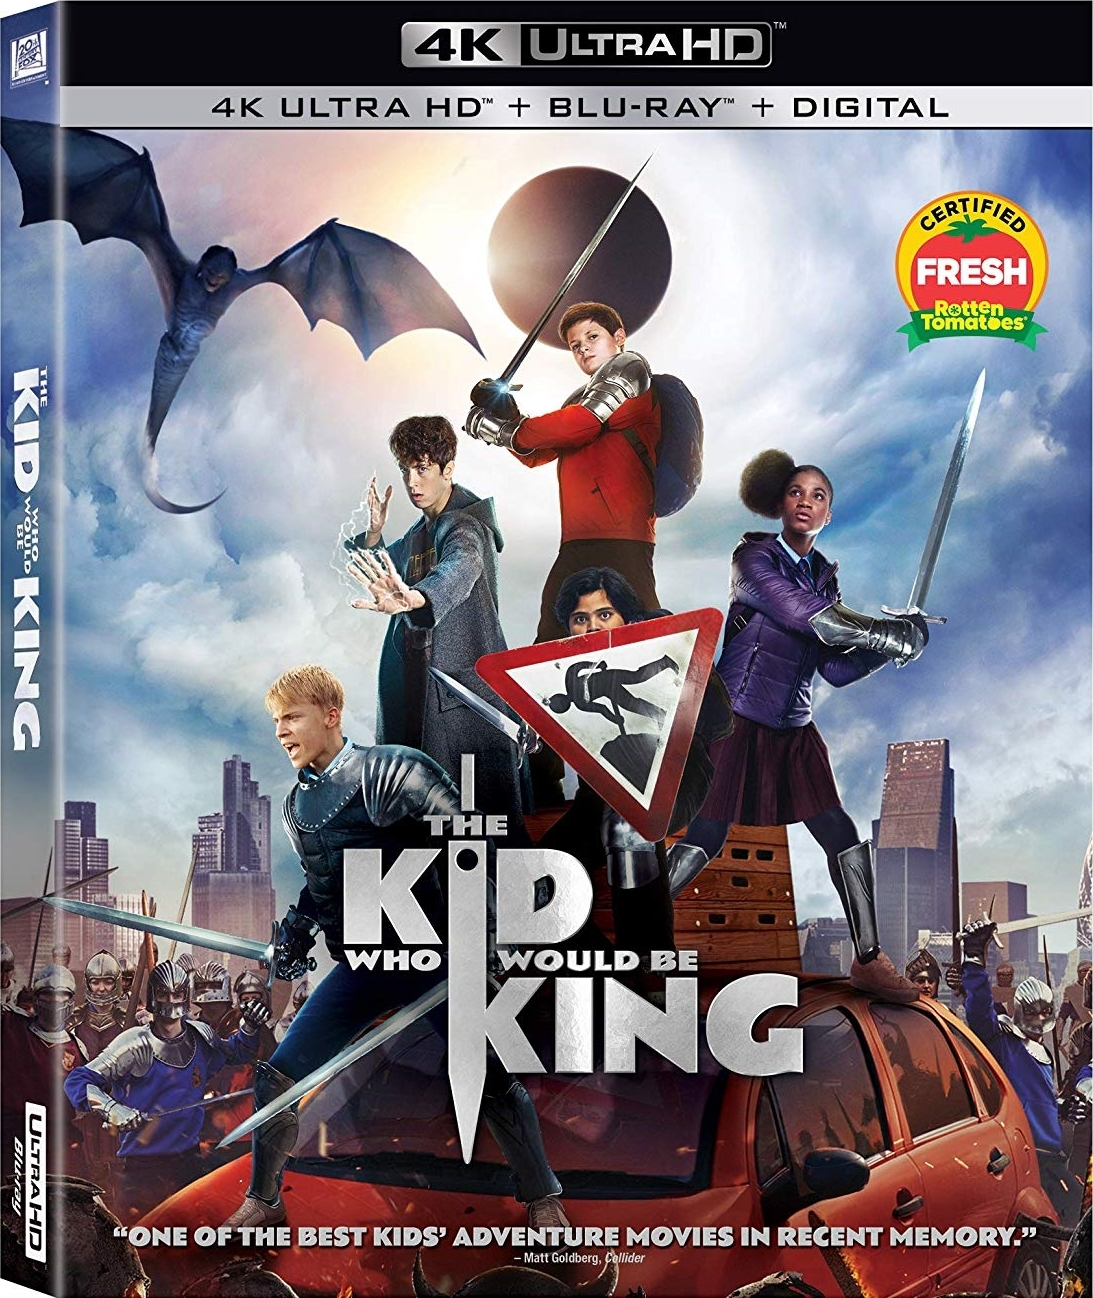 Download The Kid Who Would Be King (2019) 2160p HDR 10bit BluRay